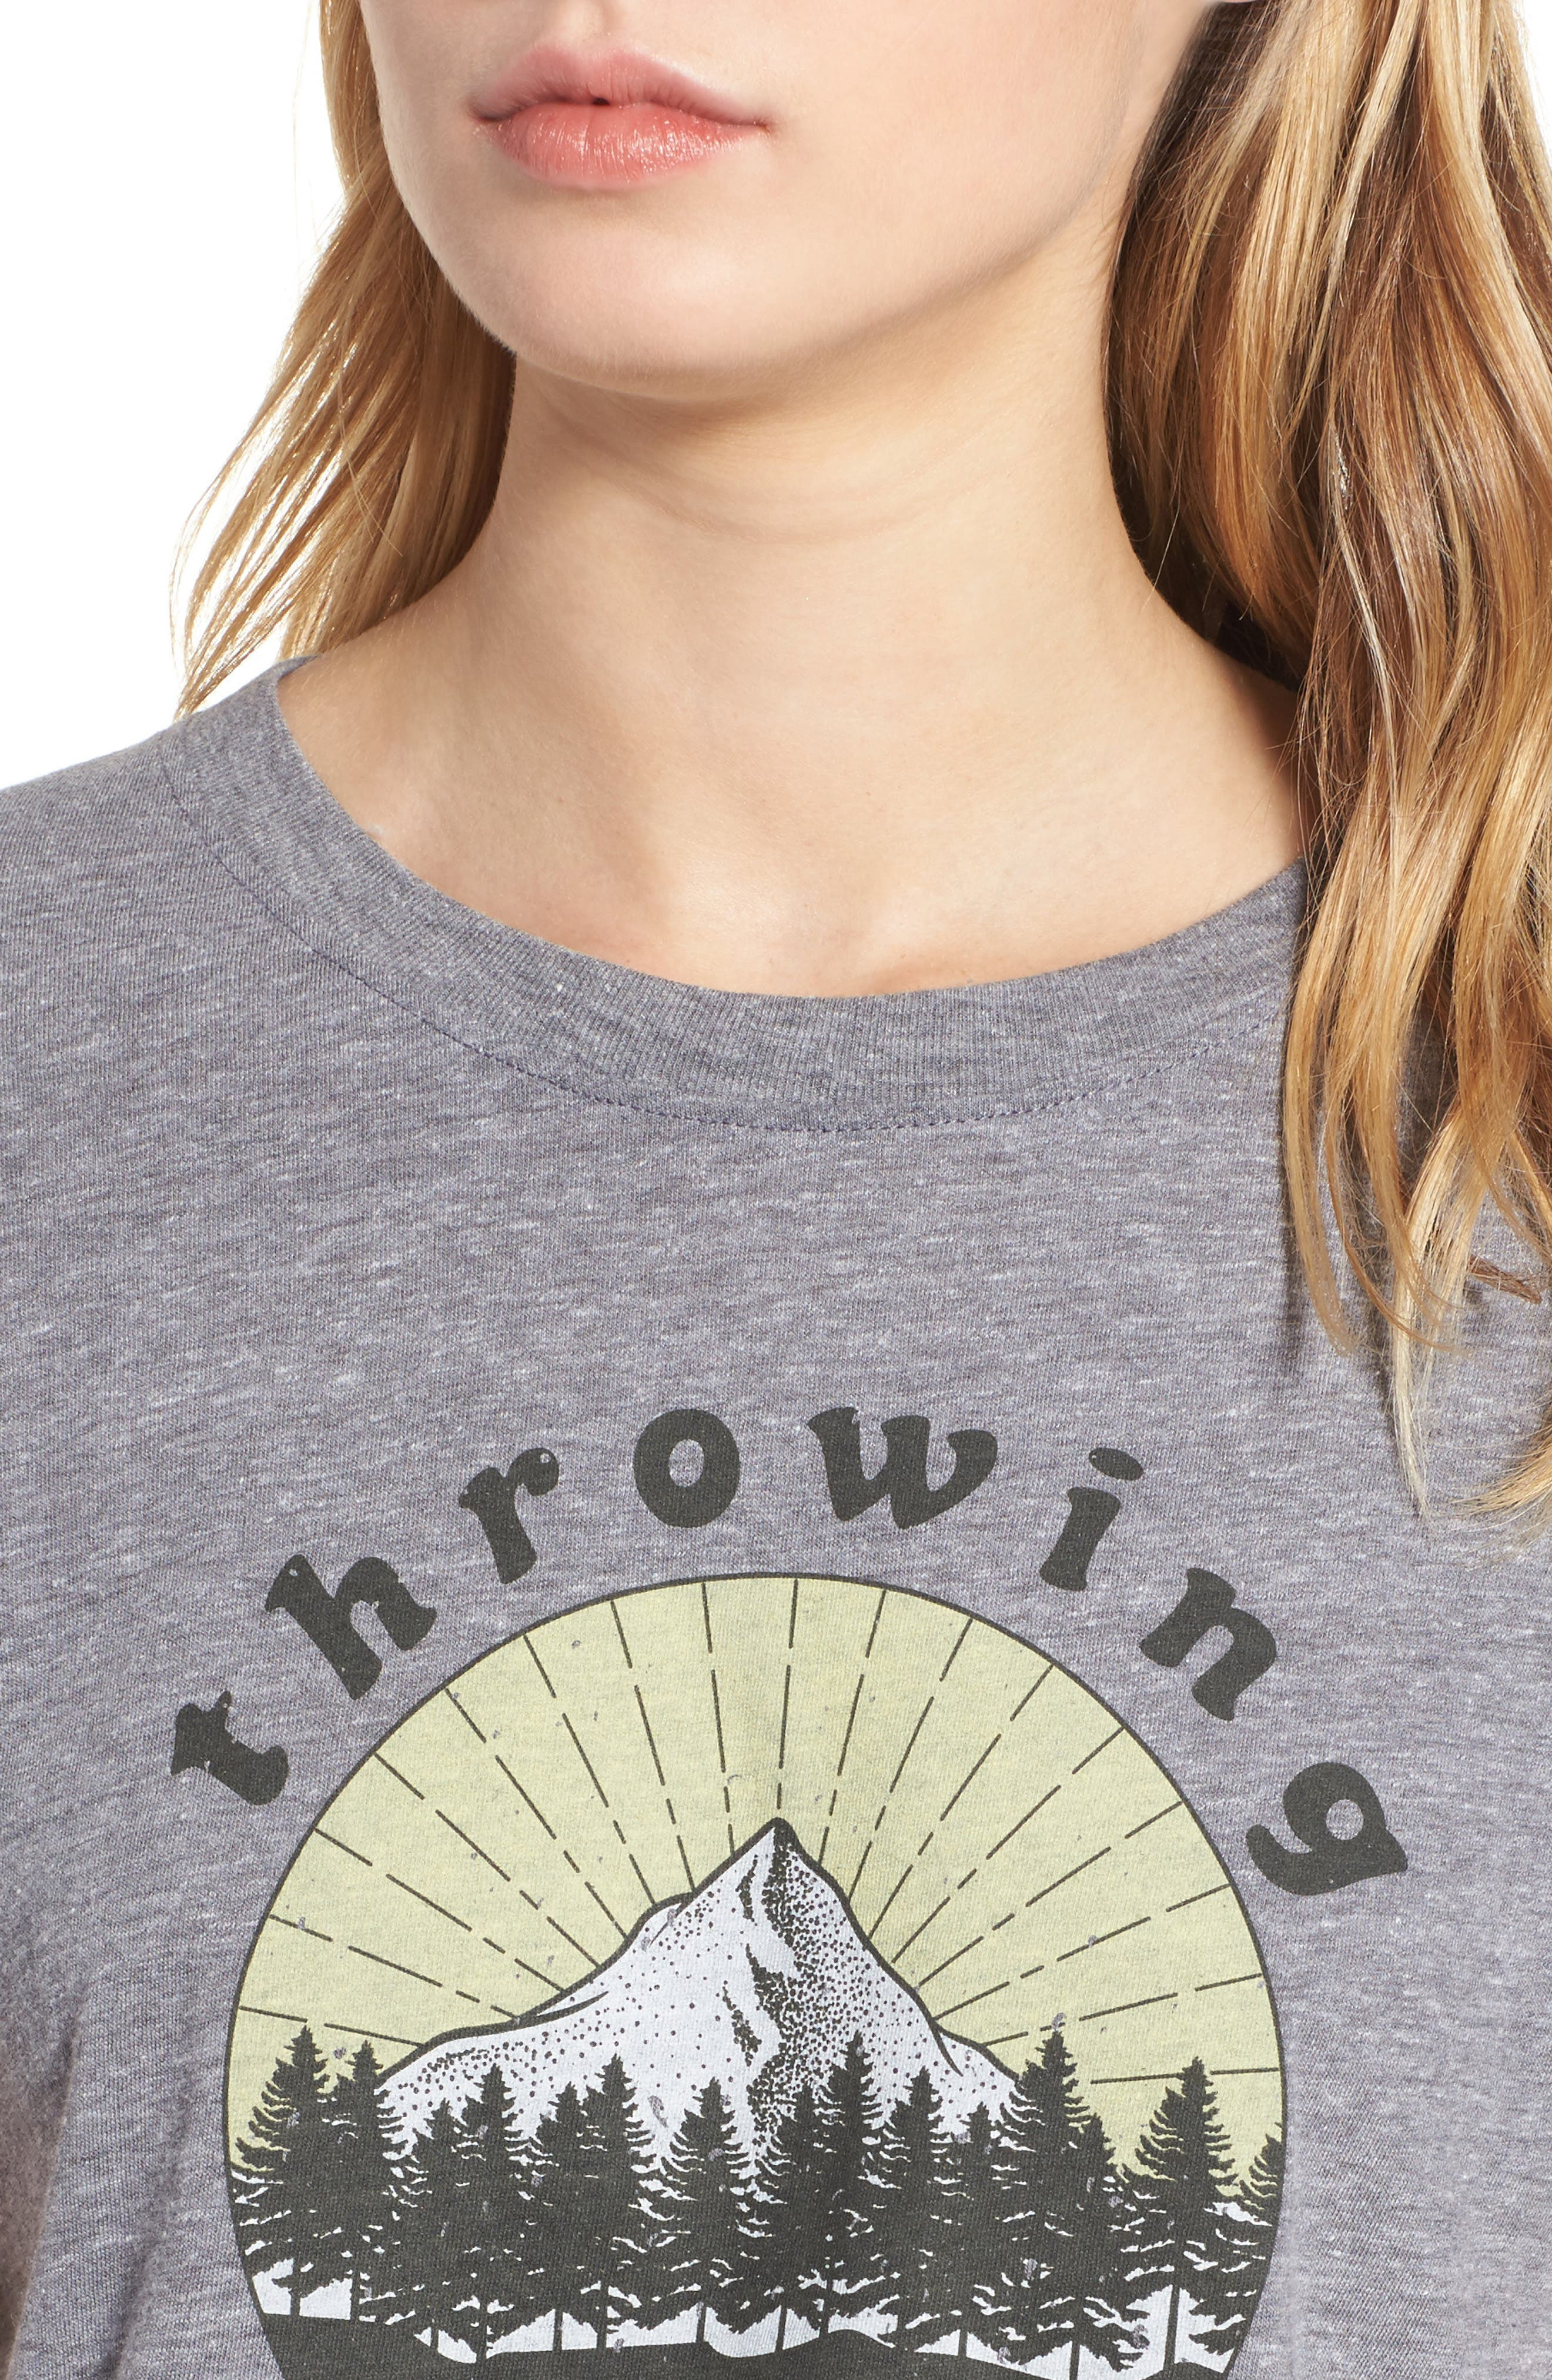 Throwing Shade Graphic Tee,                             Alternate thumbnail 4, color,                             Heather Grey